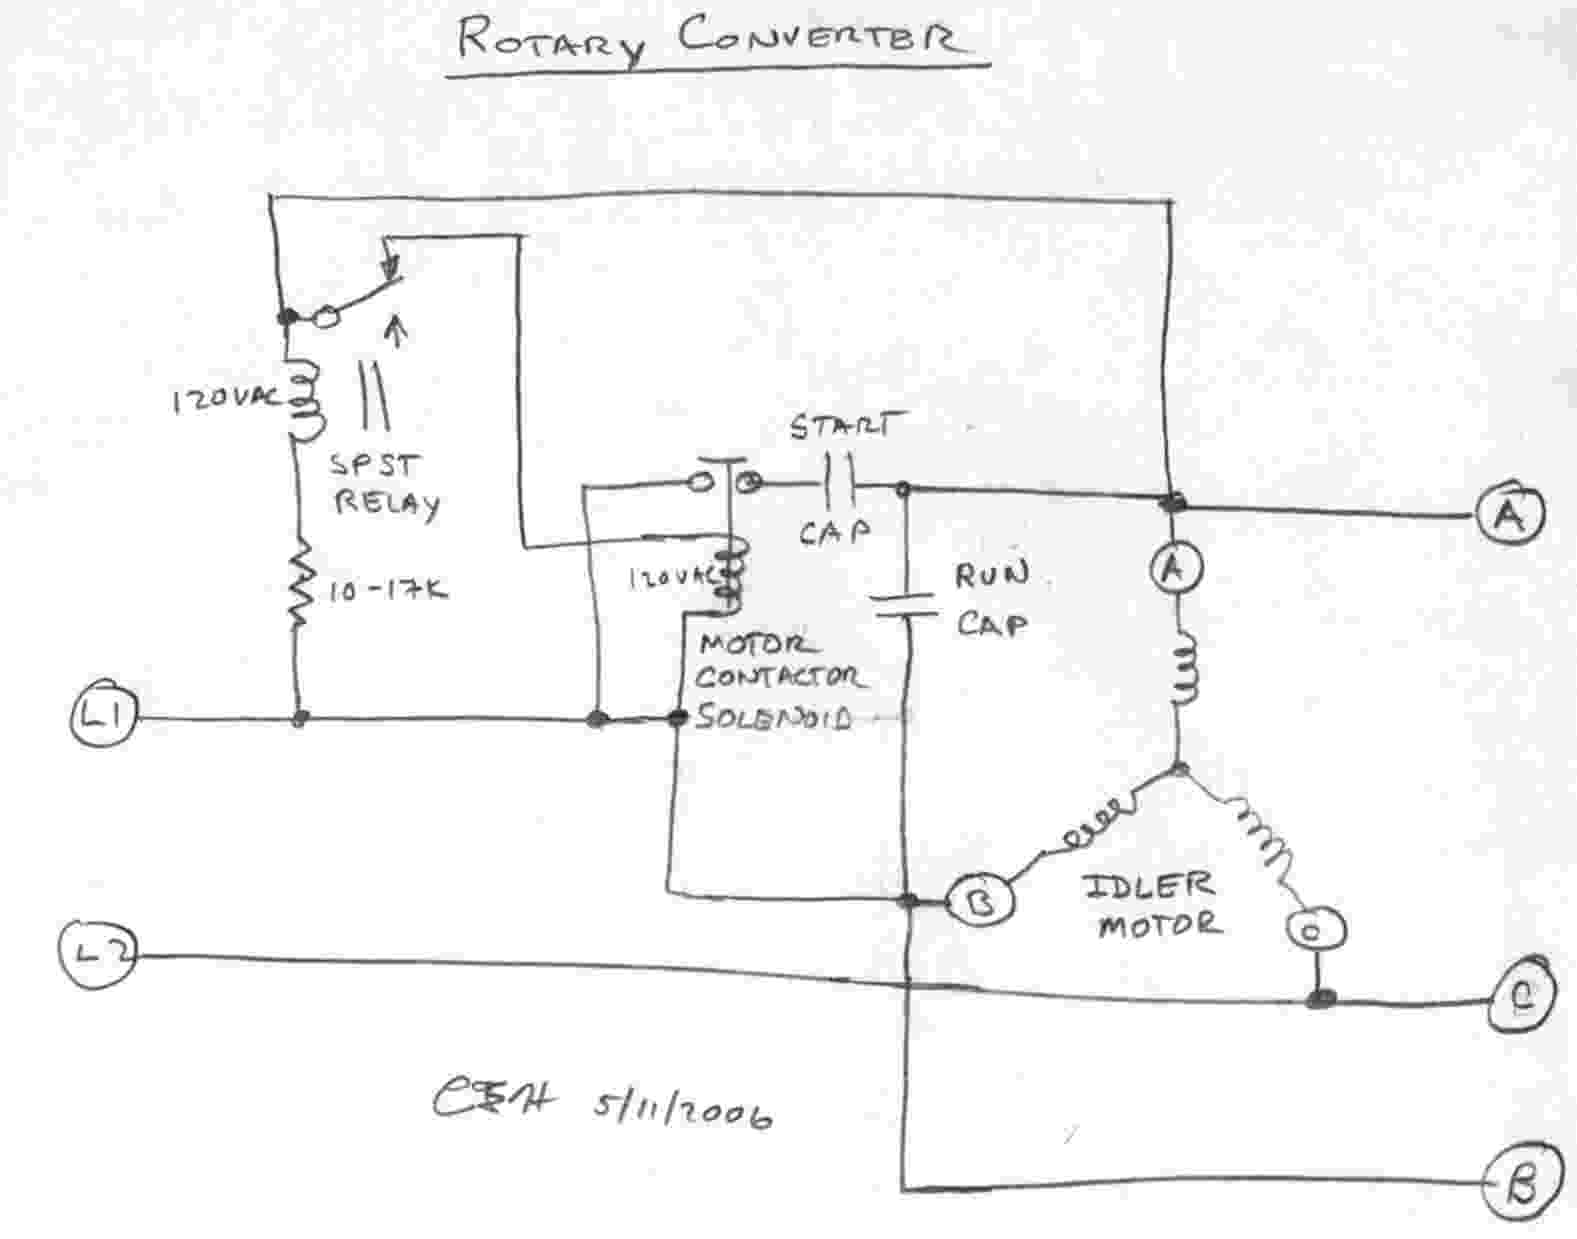 Building 3 Phase Wiring Diagram Great Design Of 208 Single Wye How To Build Rotary Converter 50 Motor Diagrams